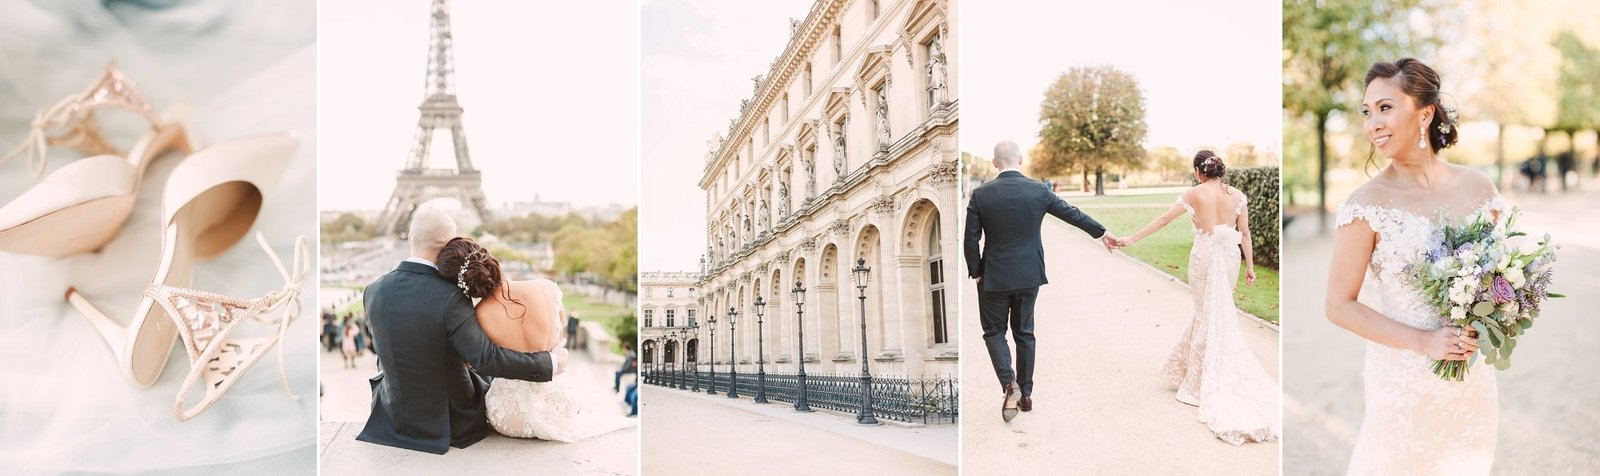 Paris Wedding Photographer | Christina Sarah Photography